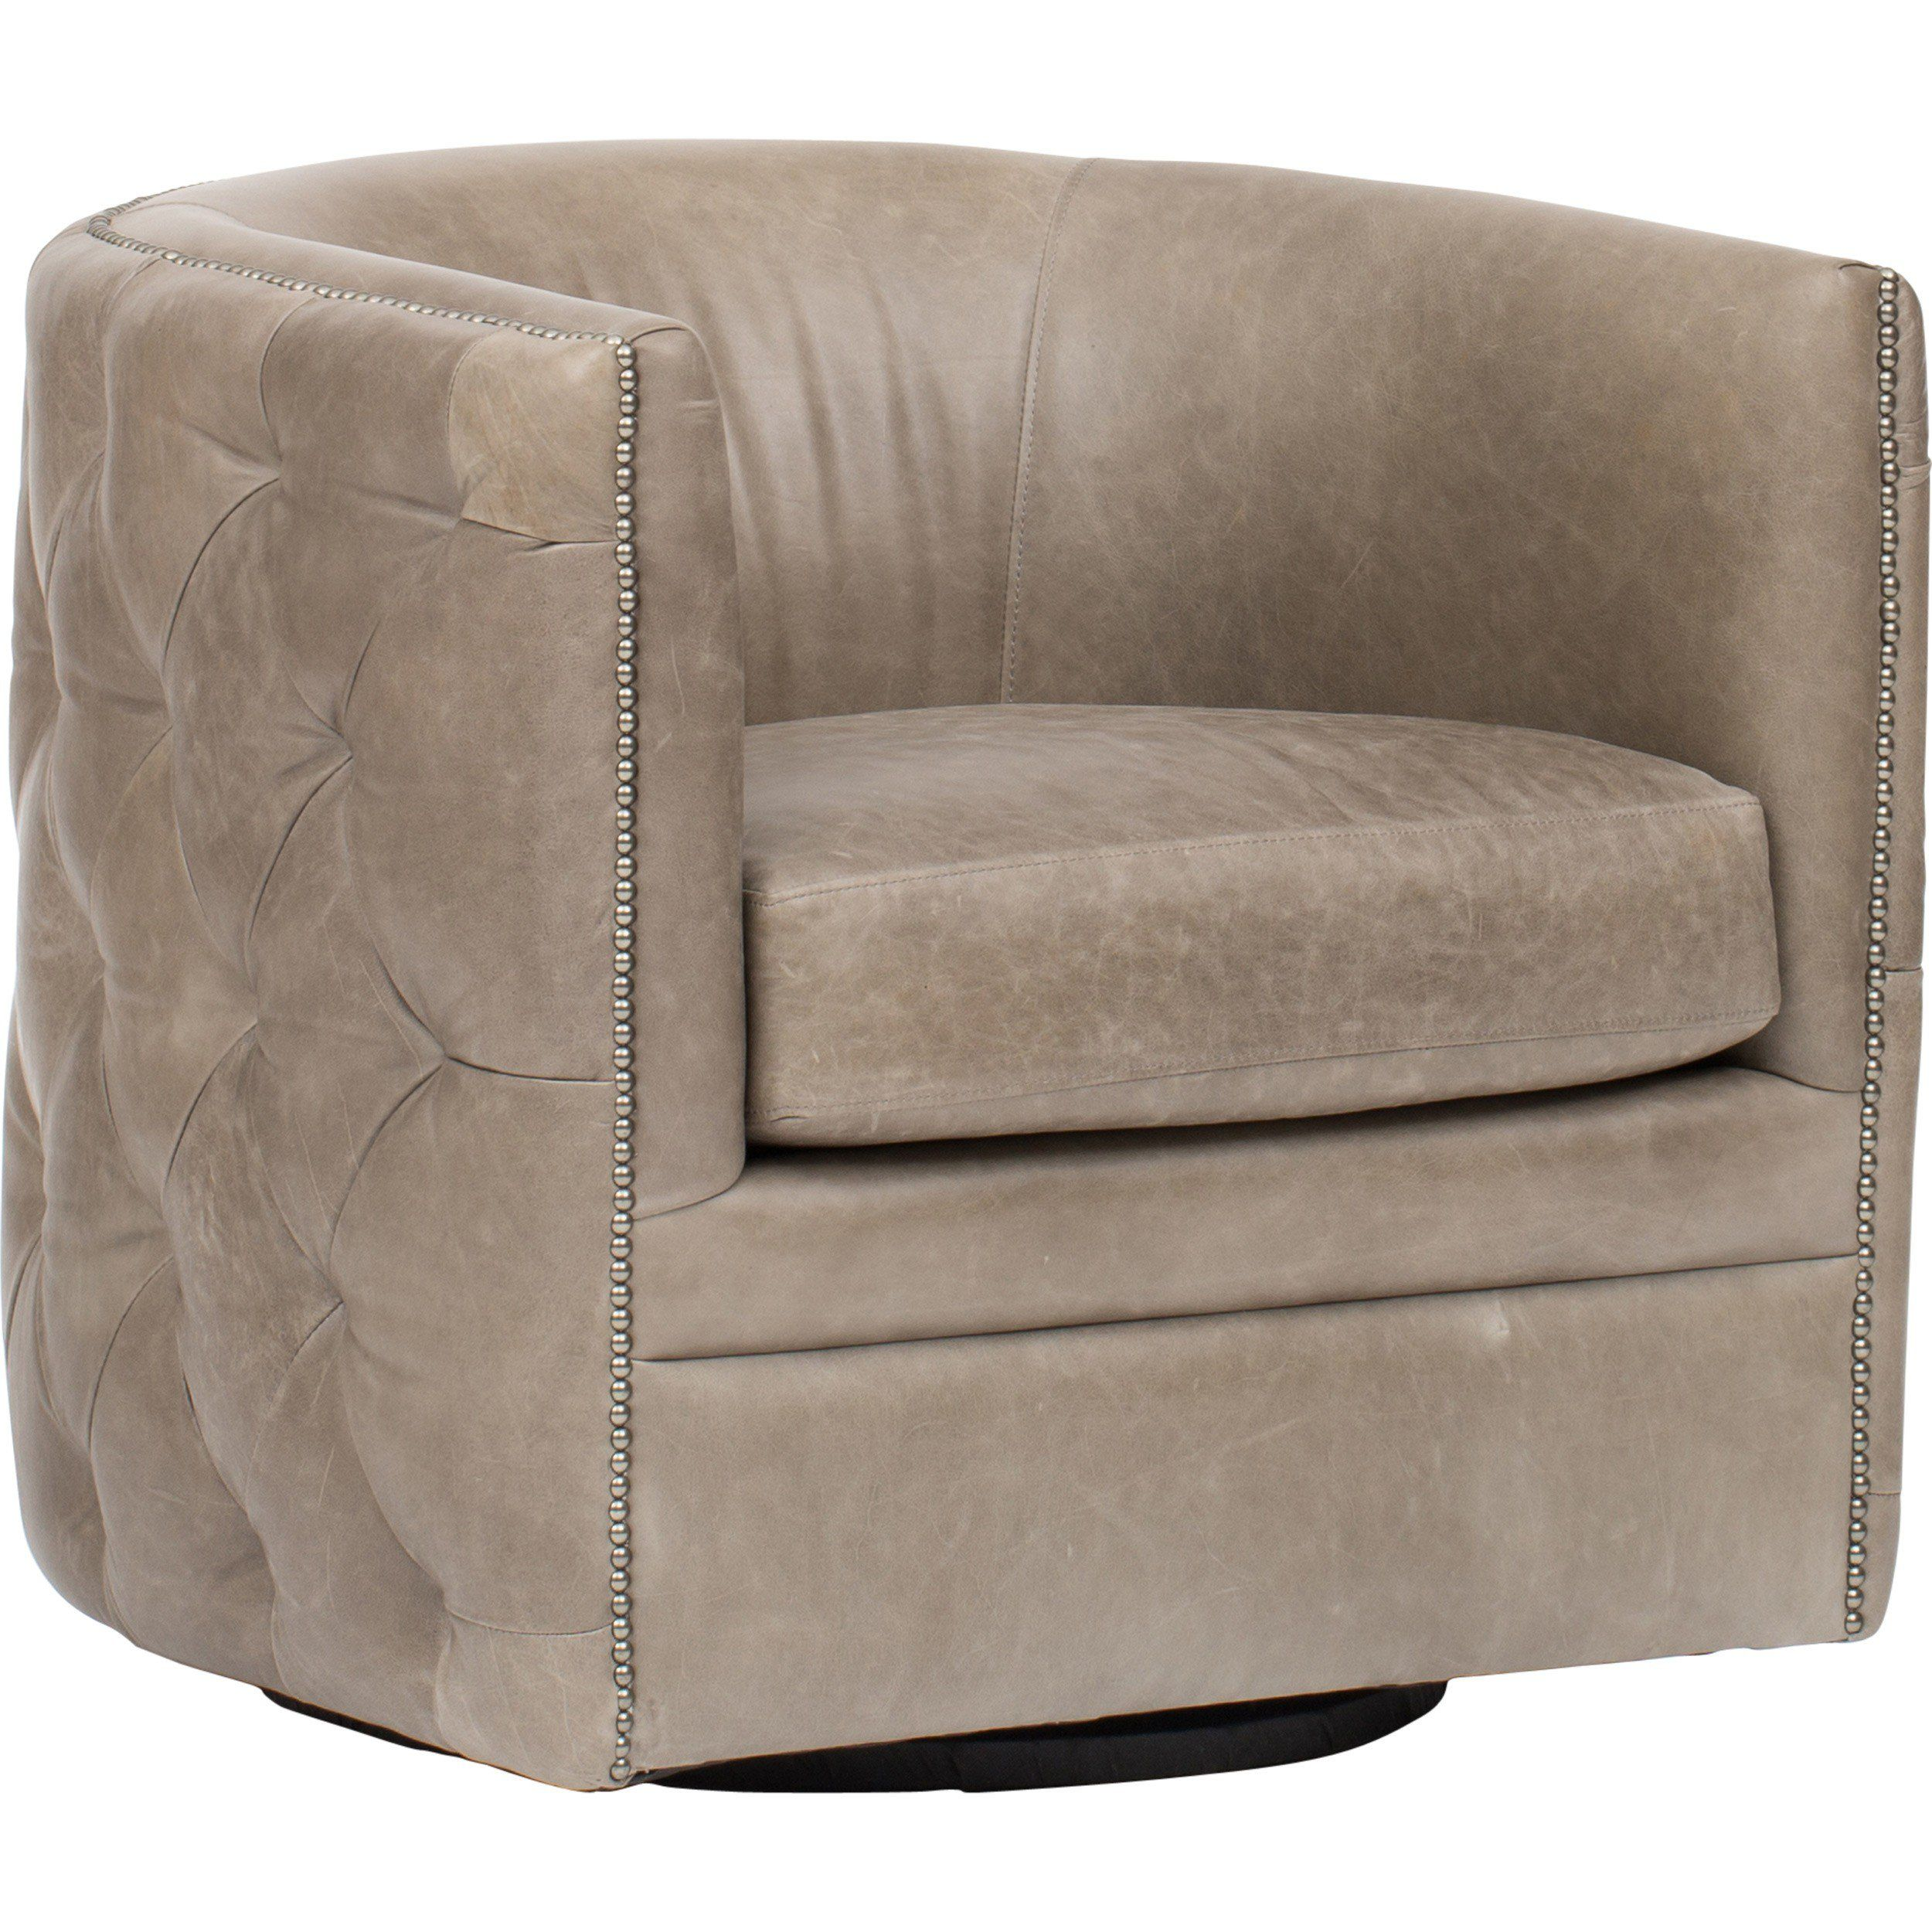 Amazing Palazzo Leather Swivel Chair Living Room Leather Swivel Beatyapartments Chair Design Images Beatyapartmentscom